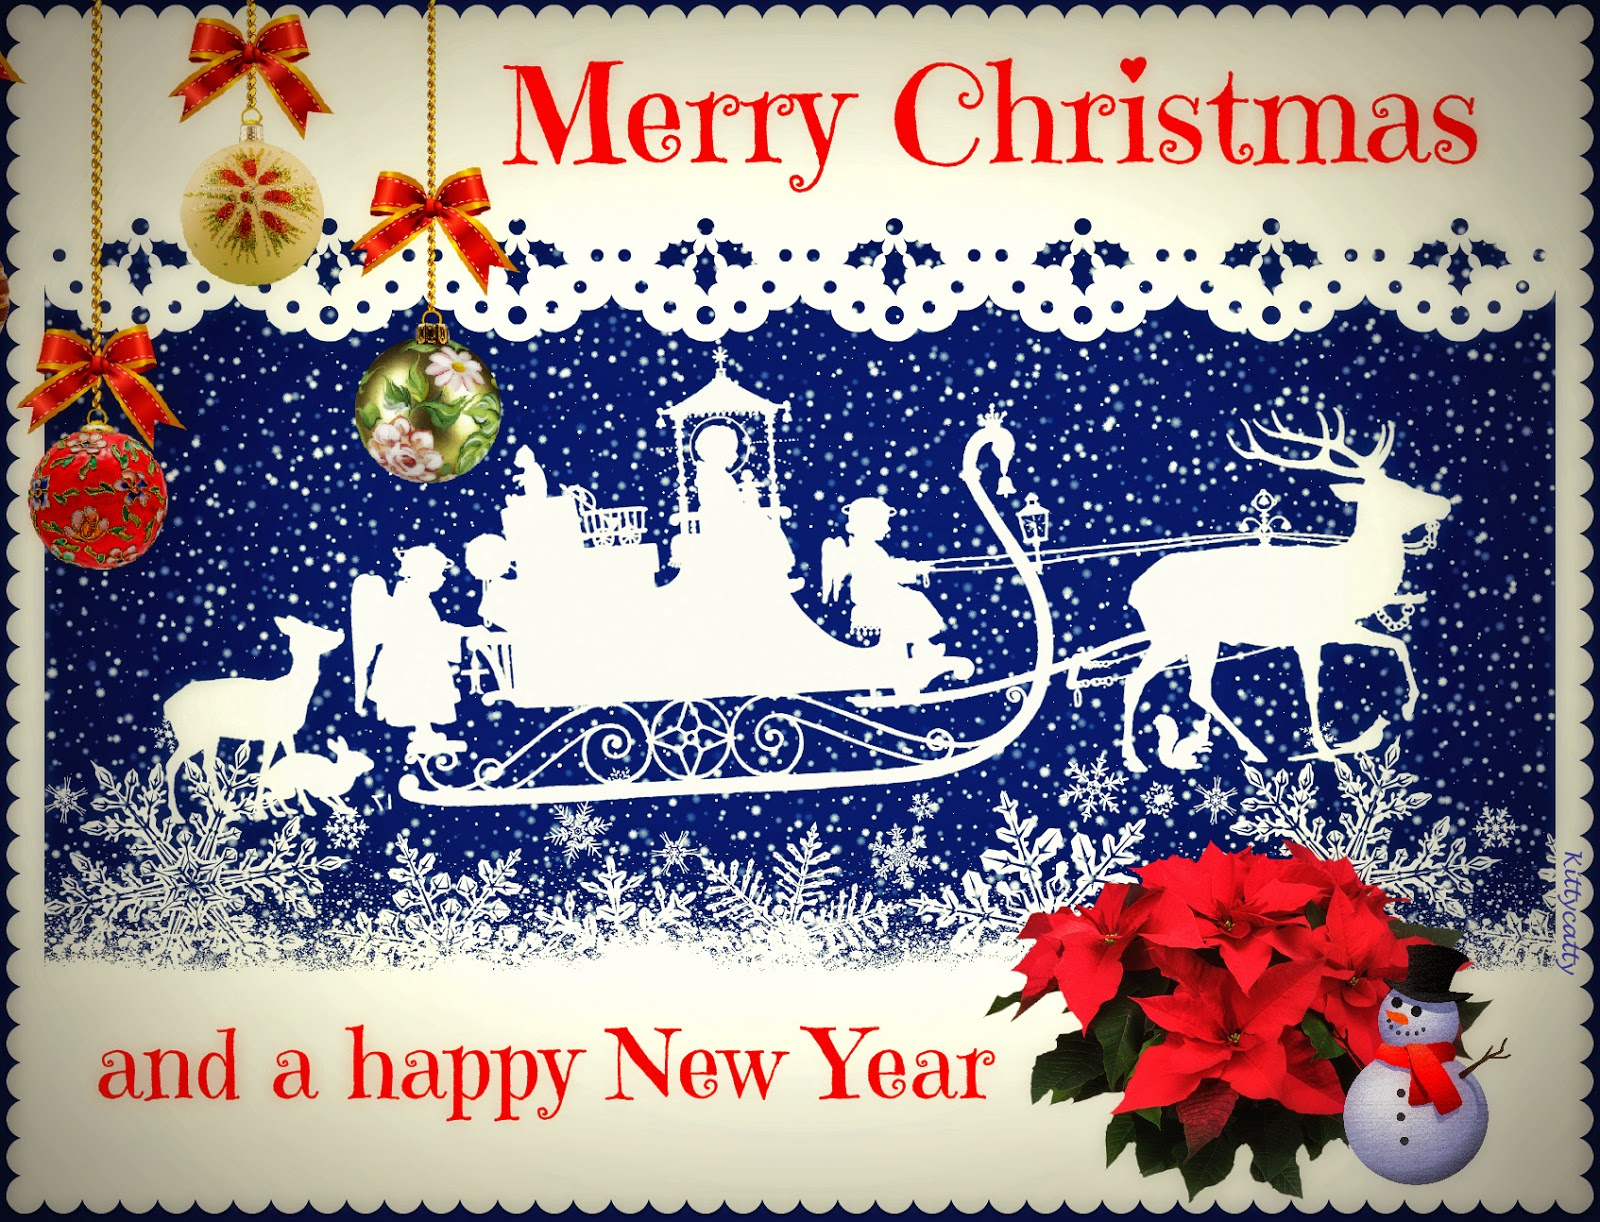 Merry-Christmas-and-happy-new-year-wishes-greeting-card-1694x1294.jpg